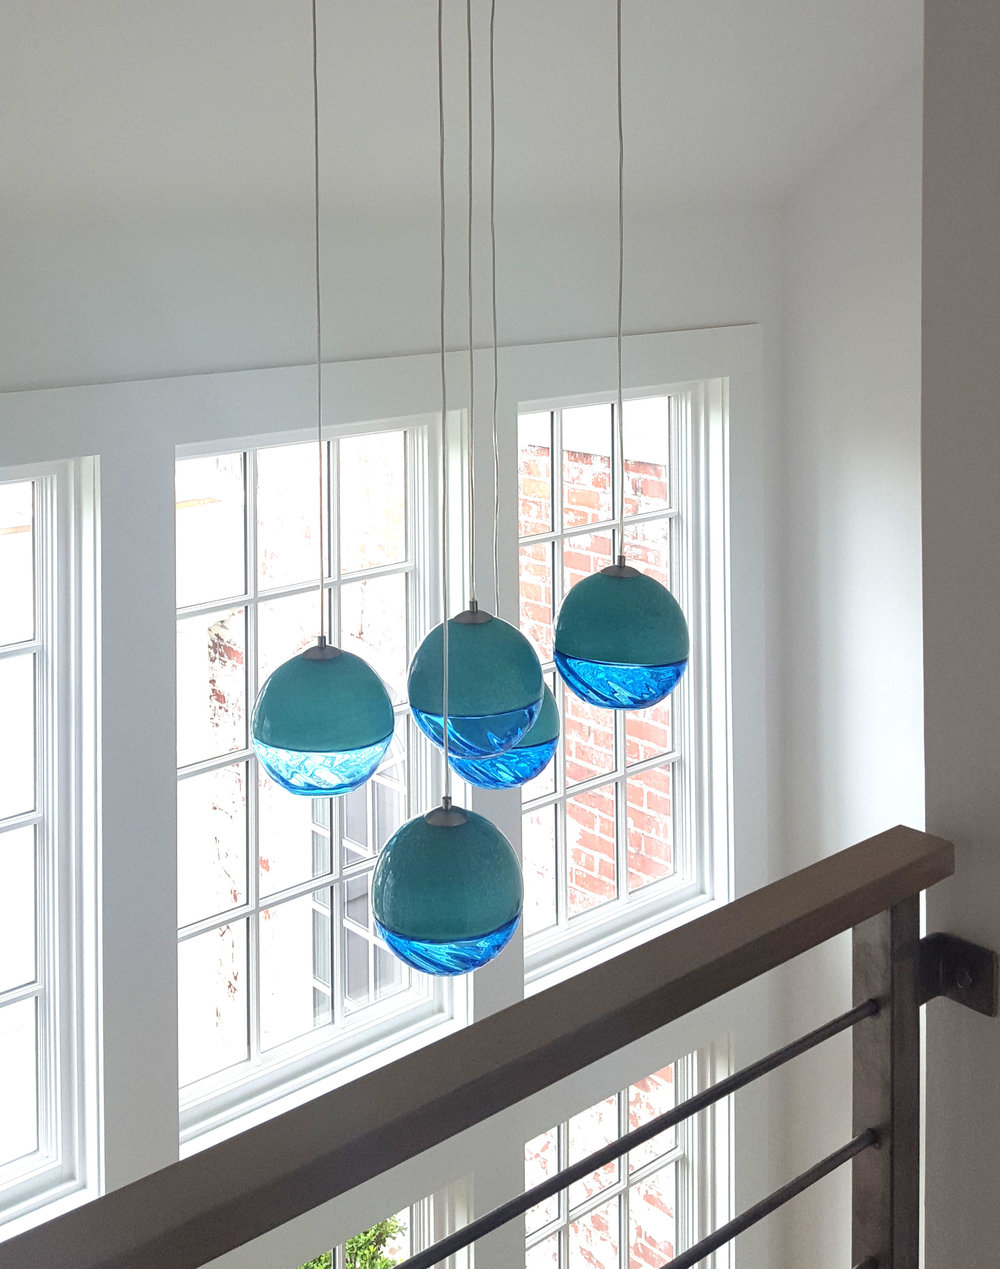 Stamford-on-the-water-blue-pendant-lights.jpg